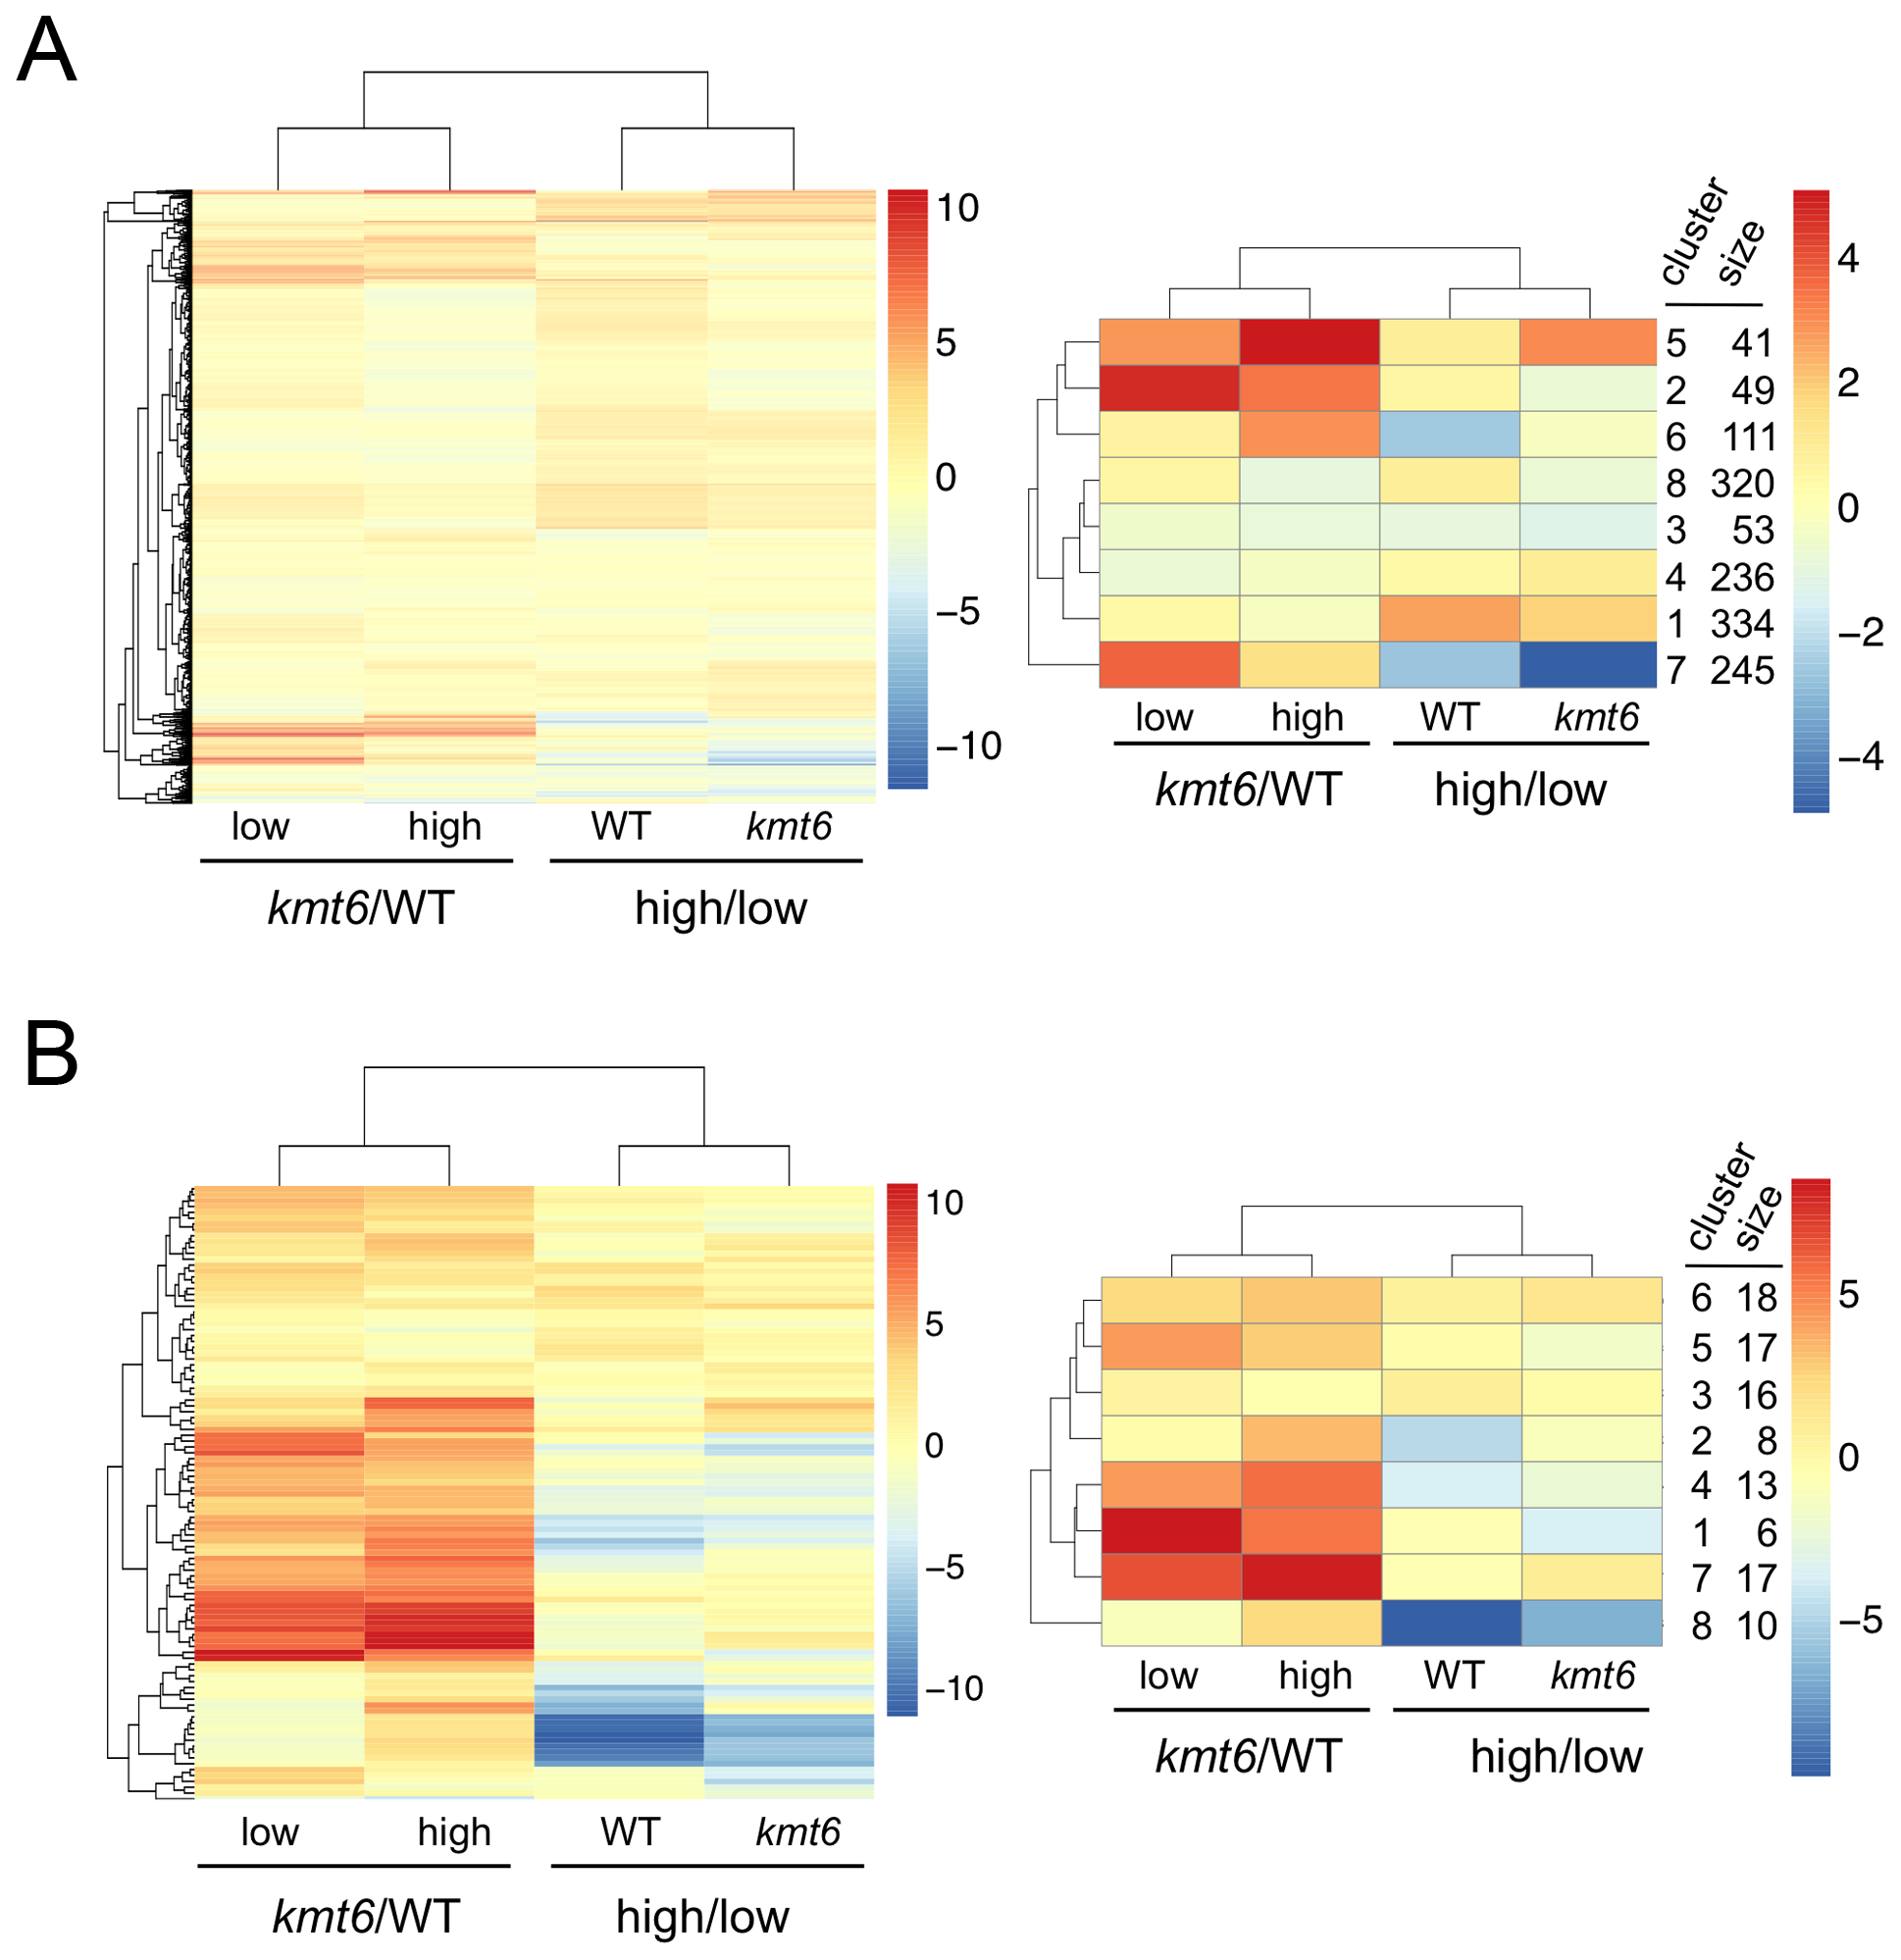 Heatmaps for individual genes in primary (A) and secondary (B) metabolism (left panels) and clusters of genes around eight centers (right panels).